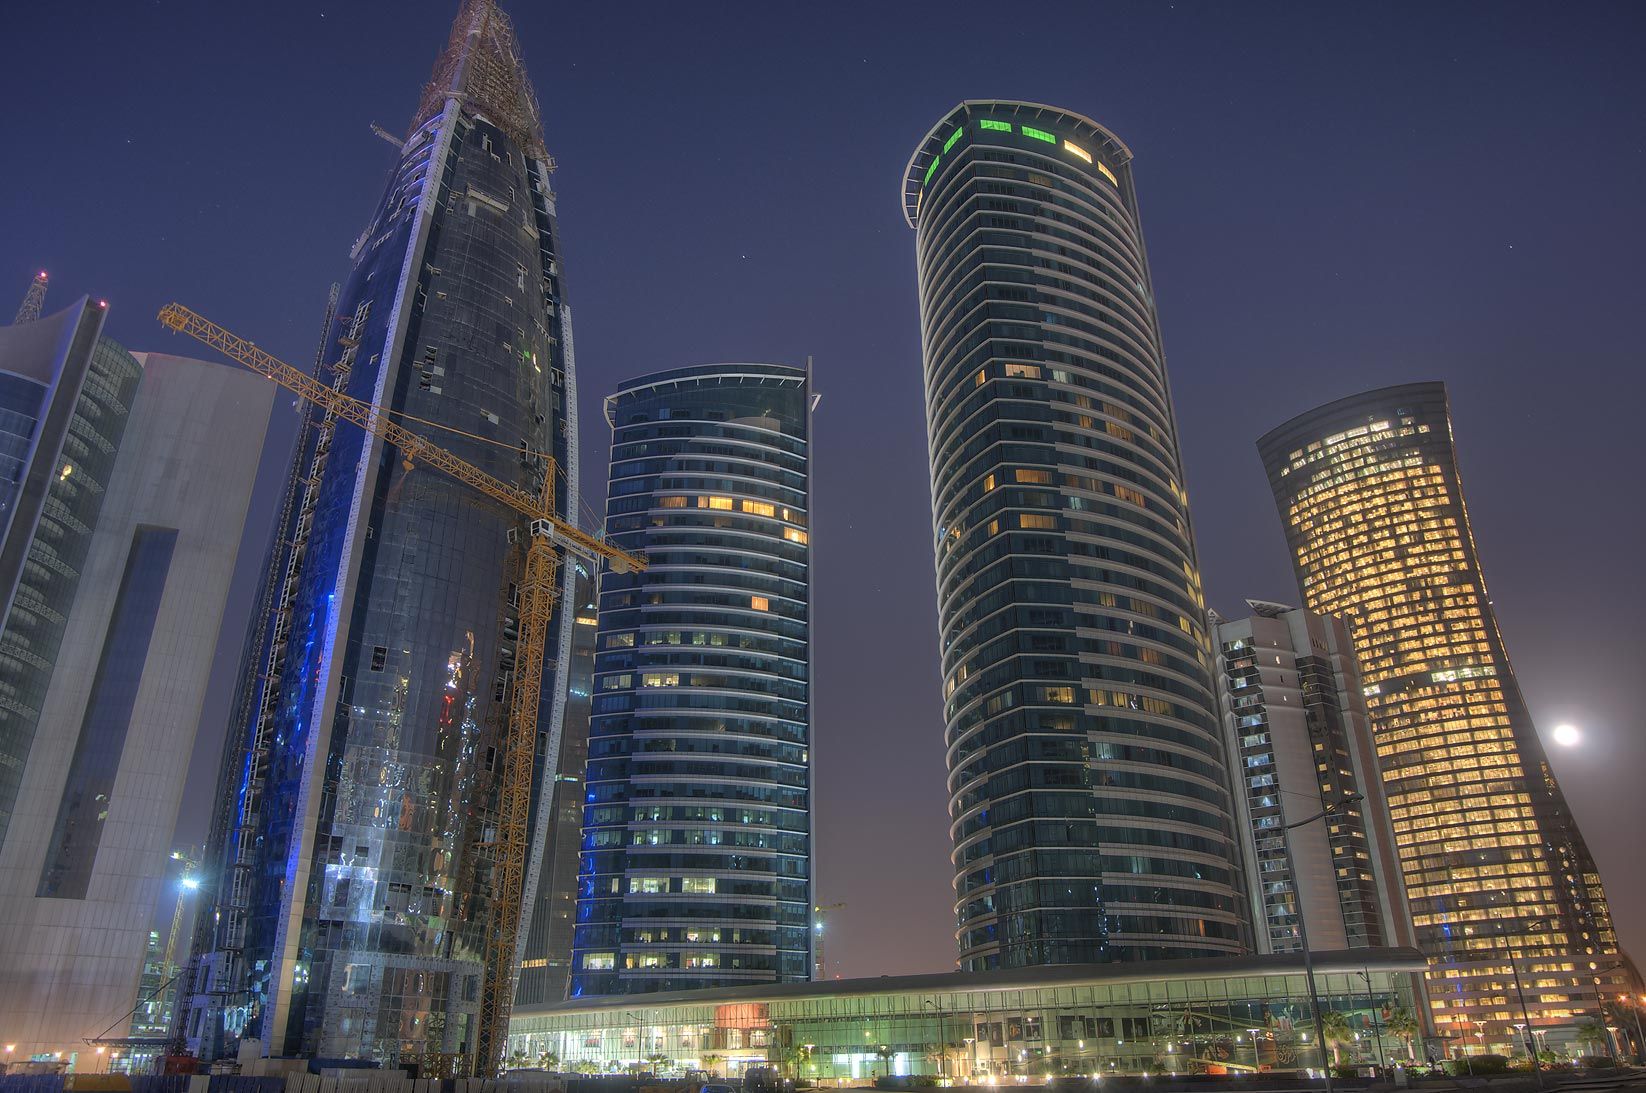 Office towers in West Bay, view from a backyard of City Center Mall. Doha, Qatar